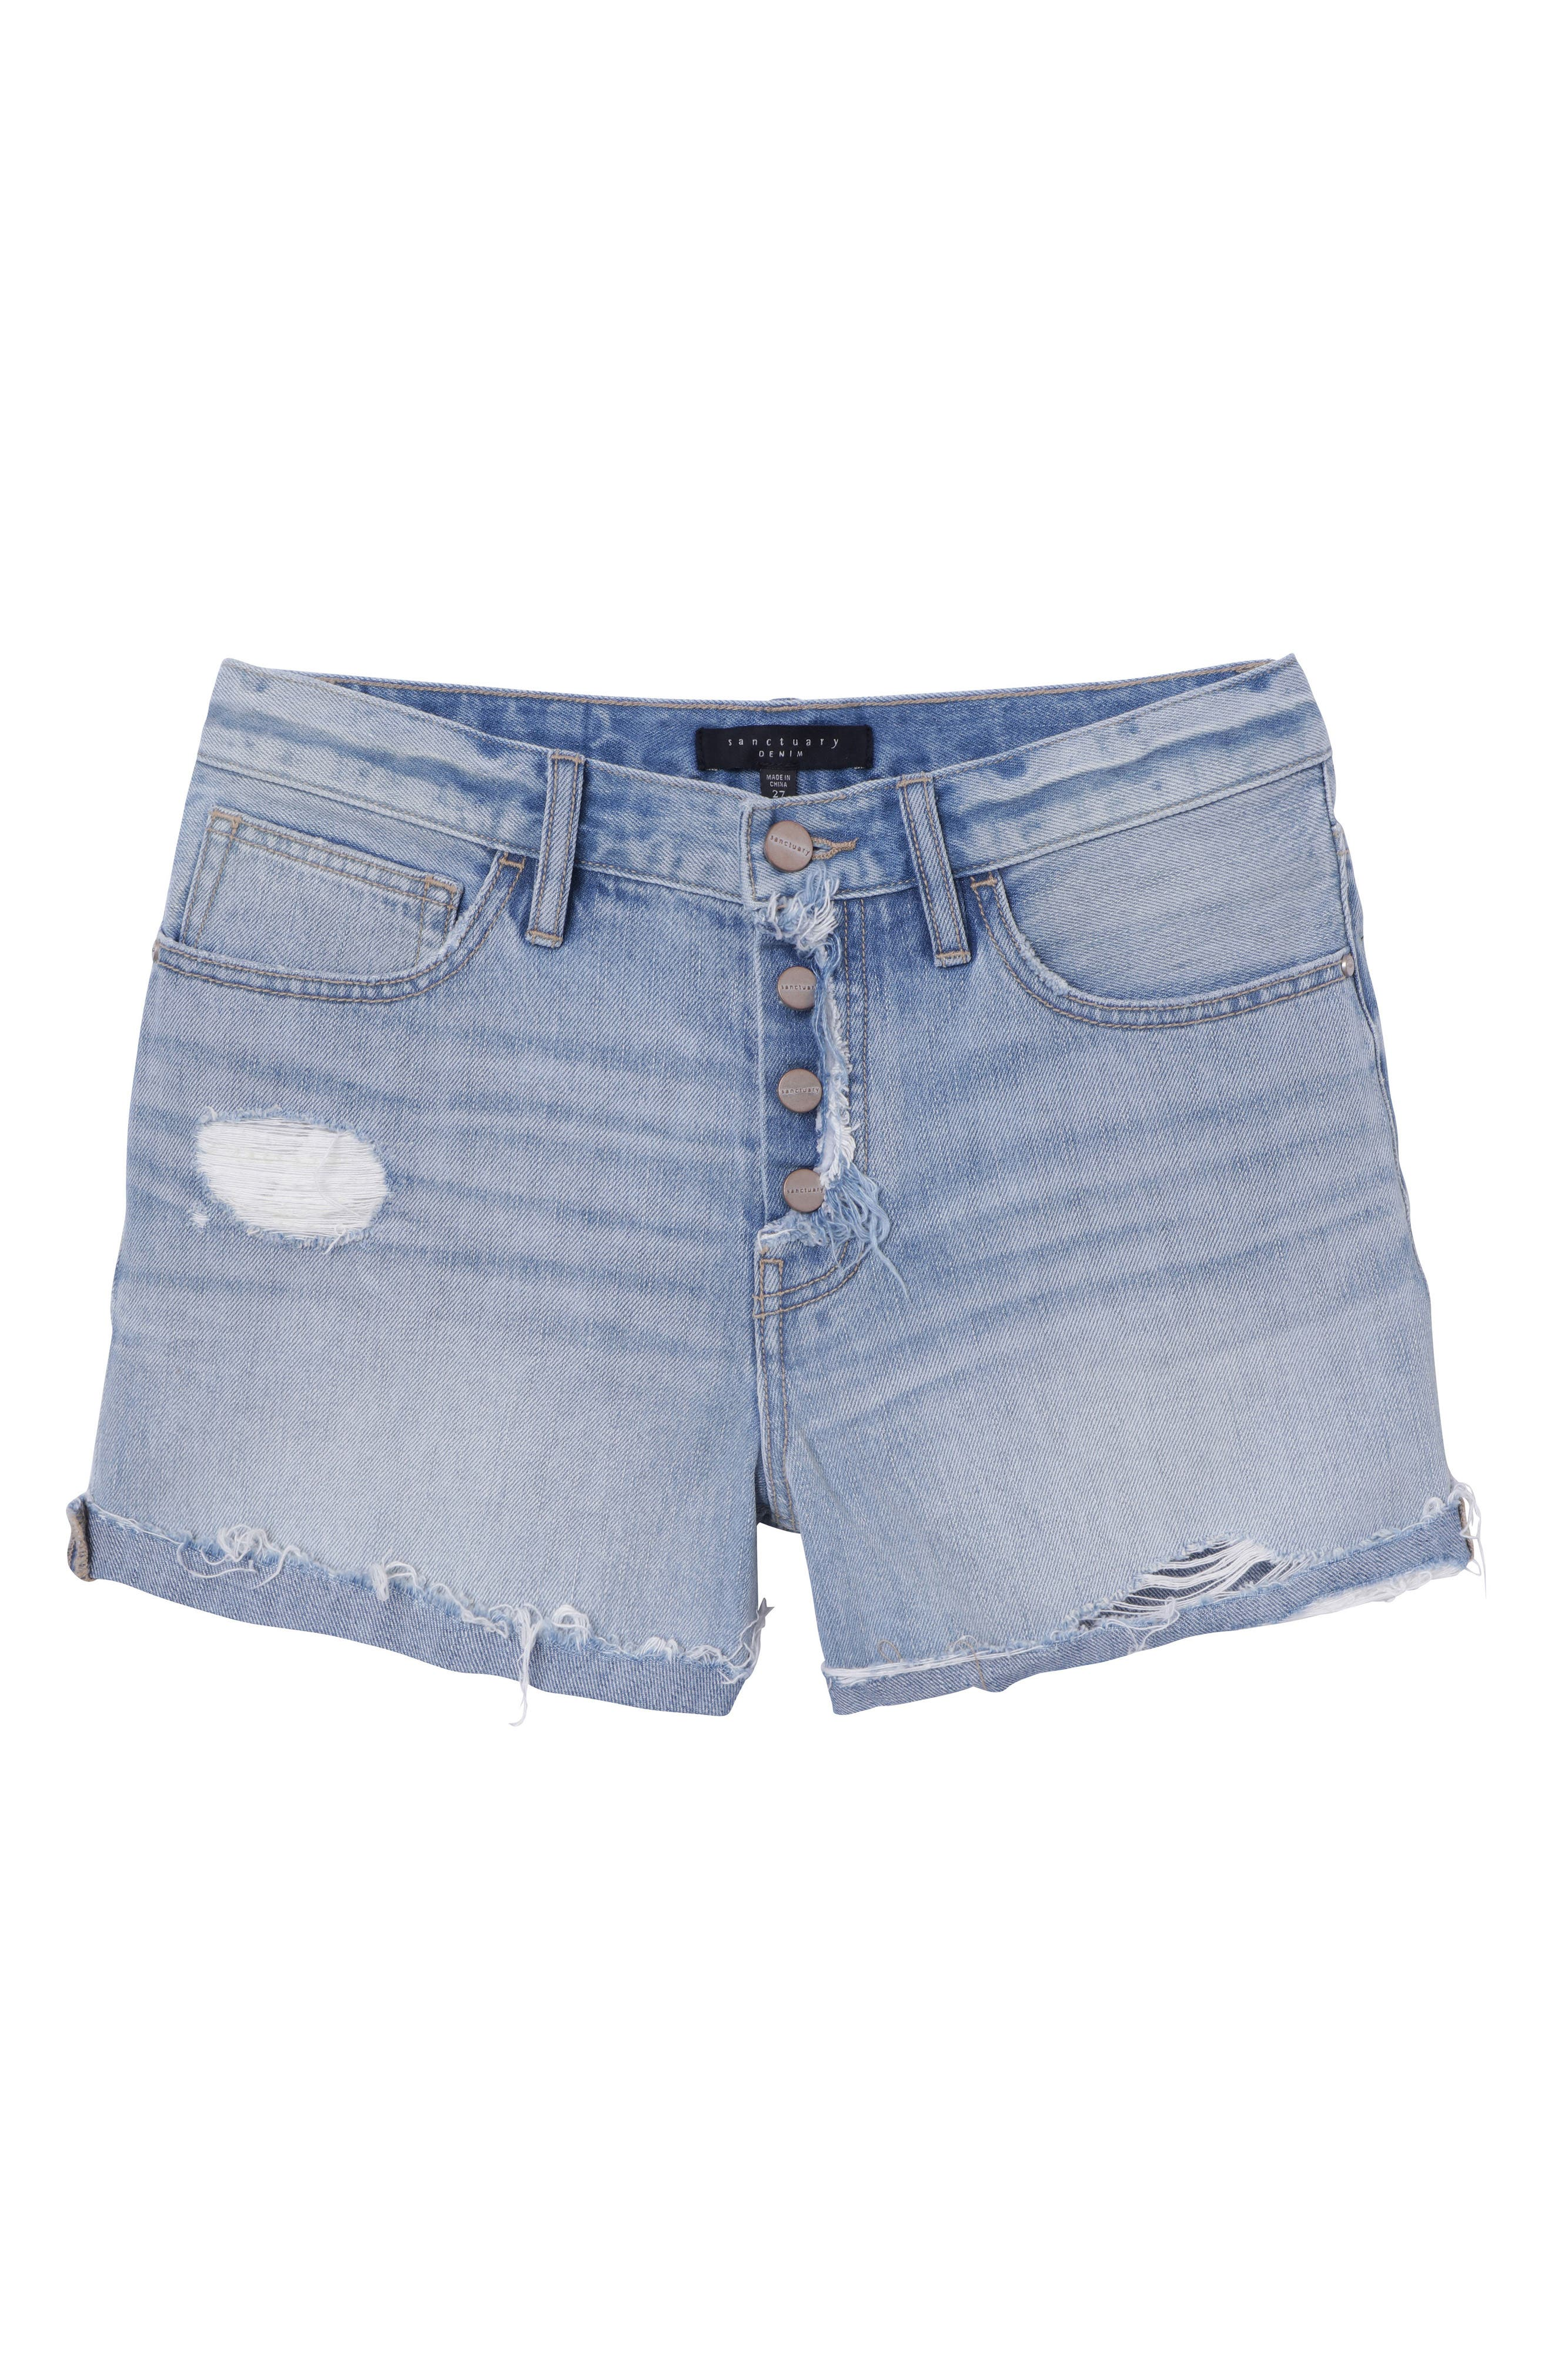 Distressed Fray Hem Rolled Shorts,                             Alternate thumbnail 6, color,                             451